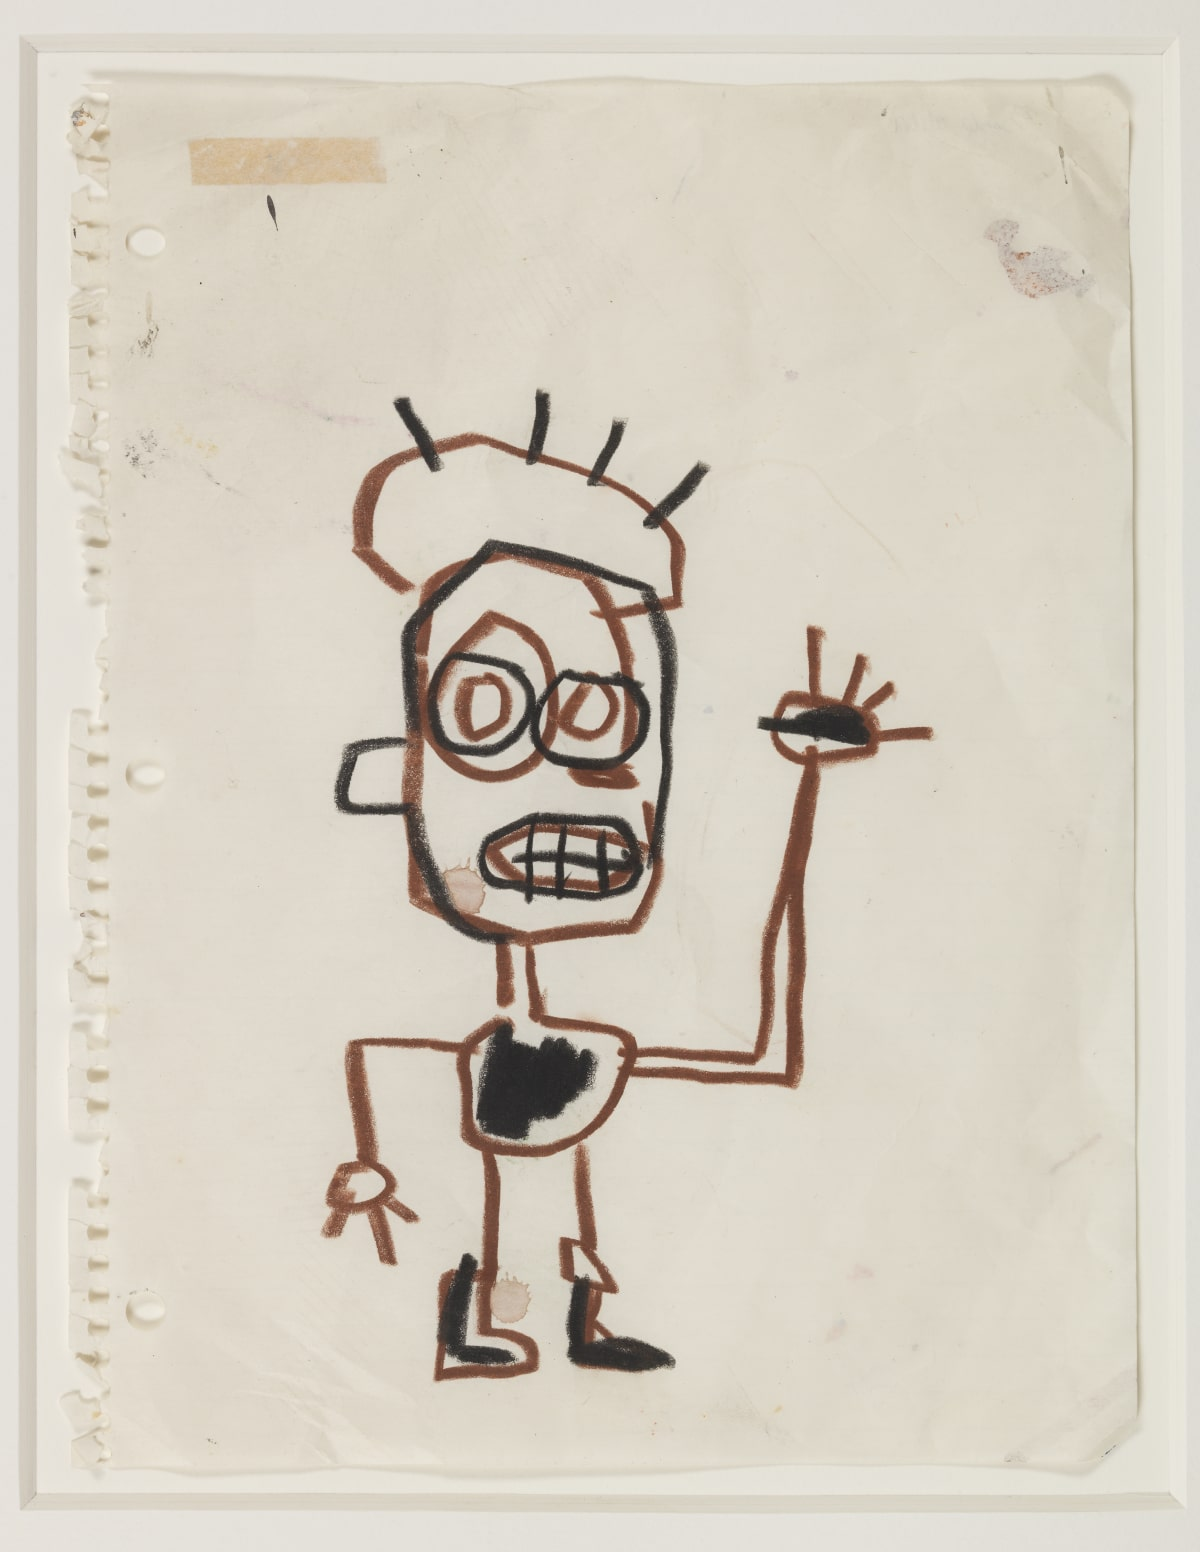 Jean-Michel Basquiat Untitled (3 drawings), 1982 Crayon on Notebook Paper 27.9 x 21.5cm